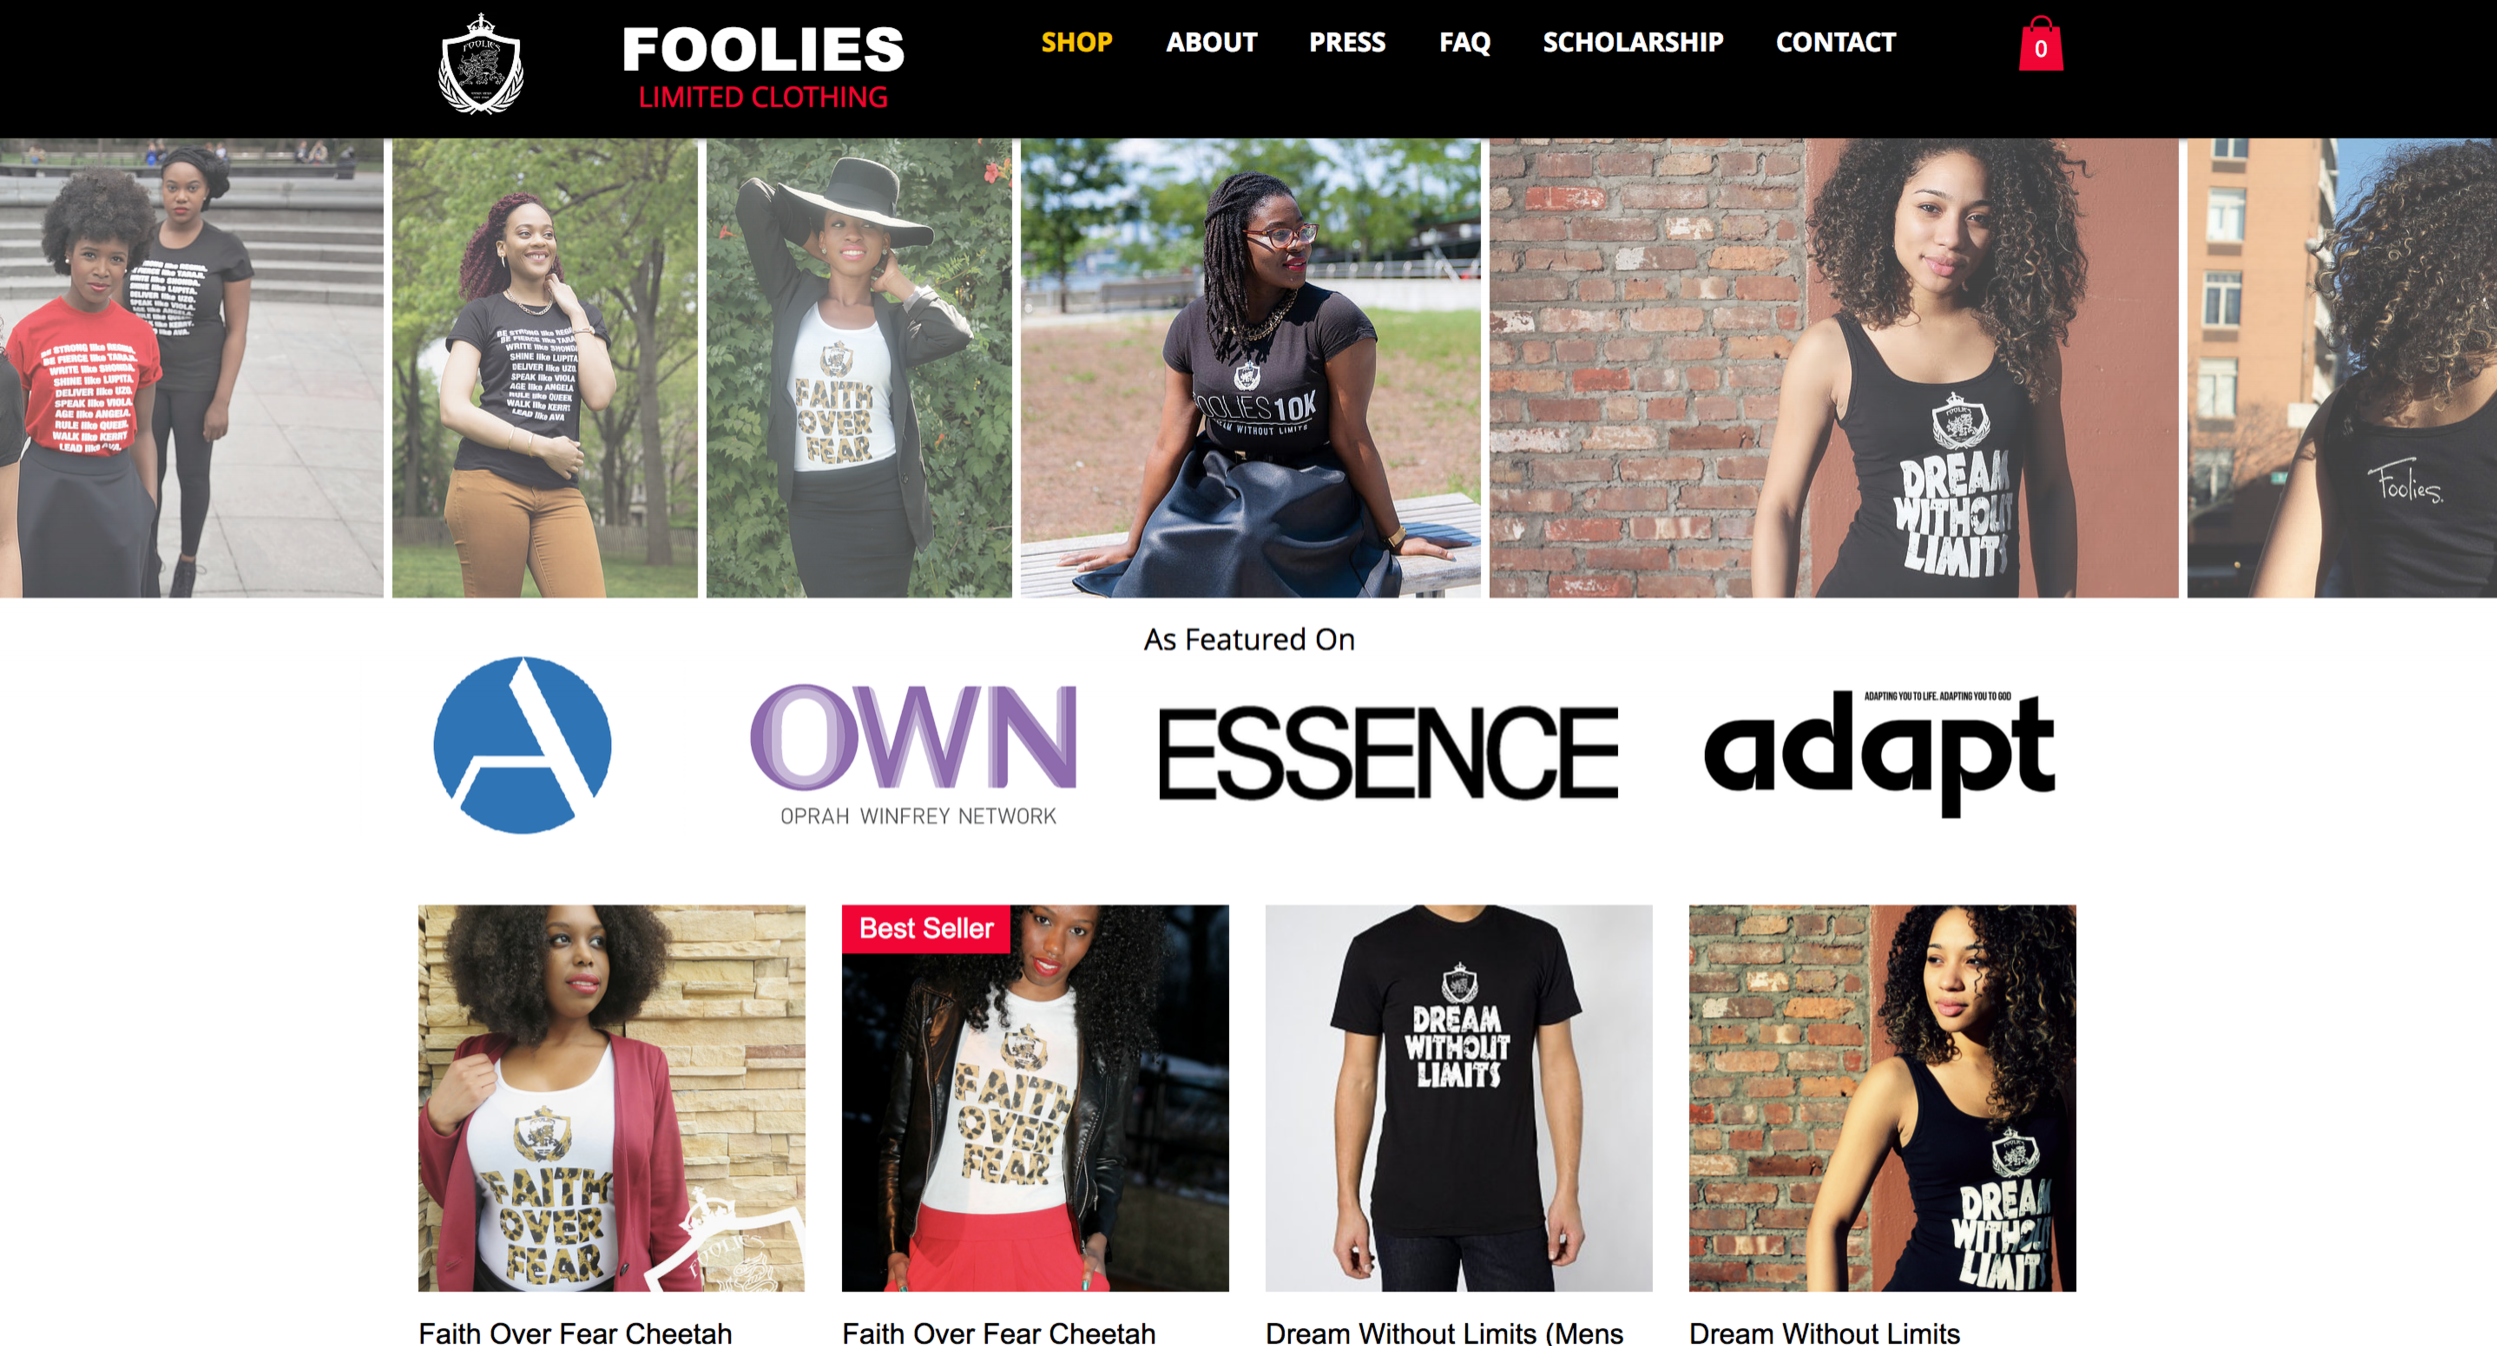 Foolies Limited Clothing